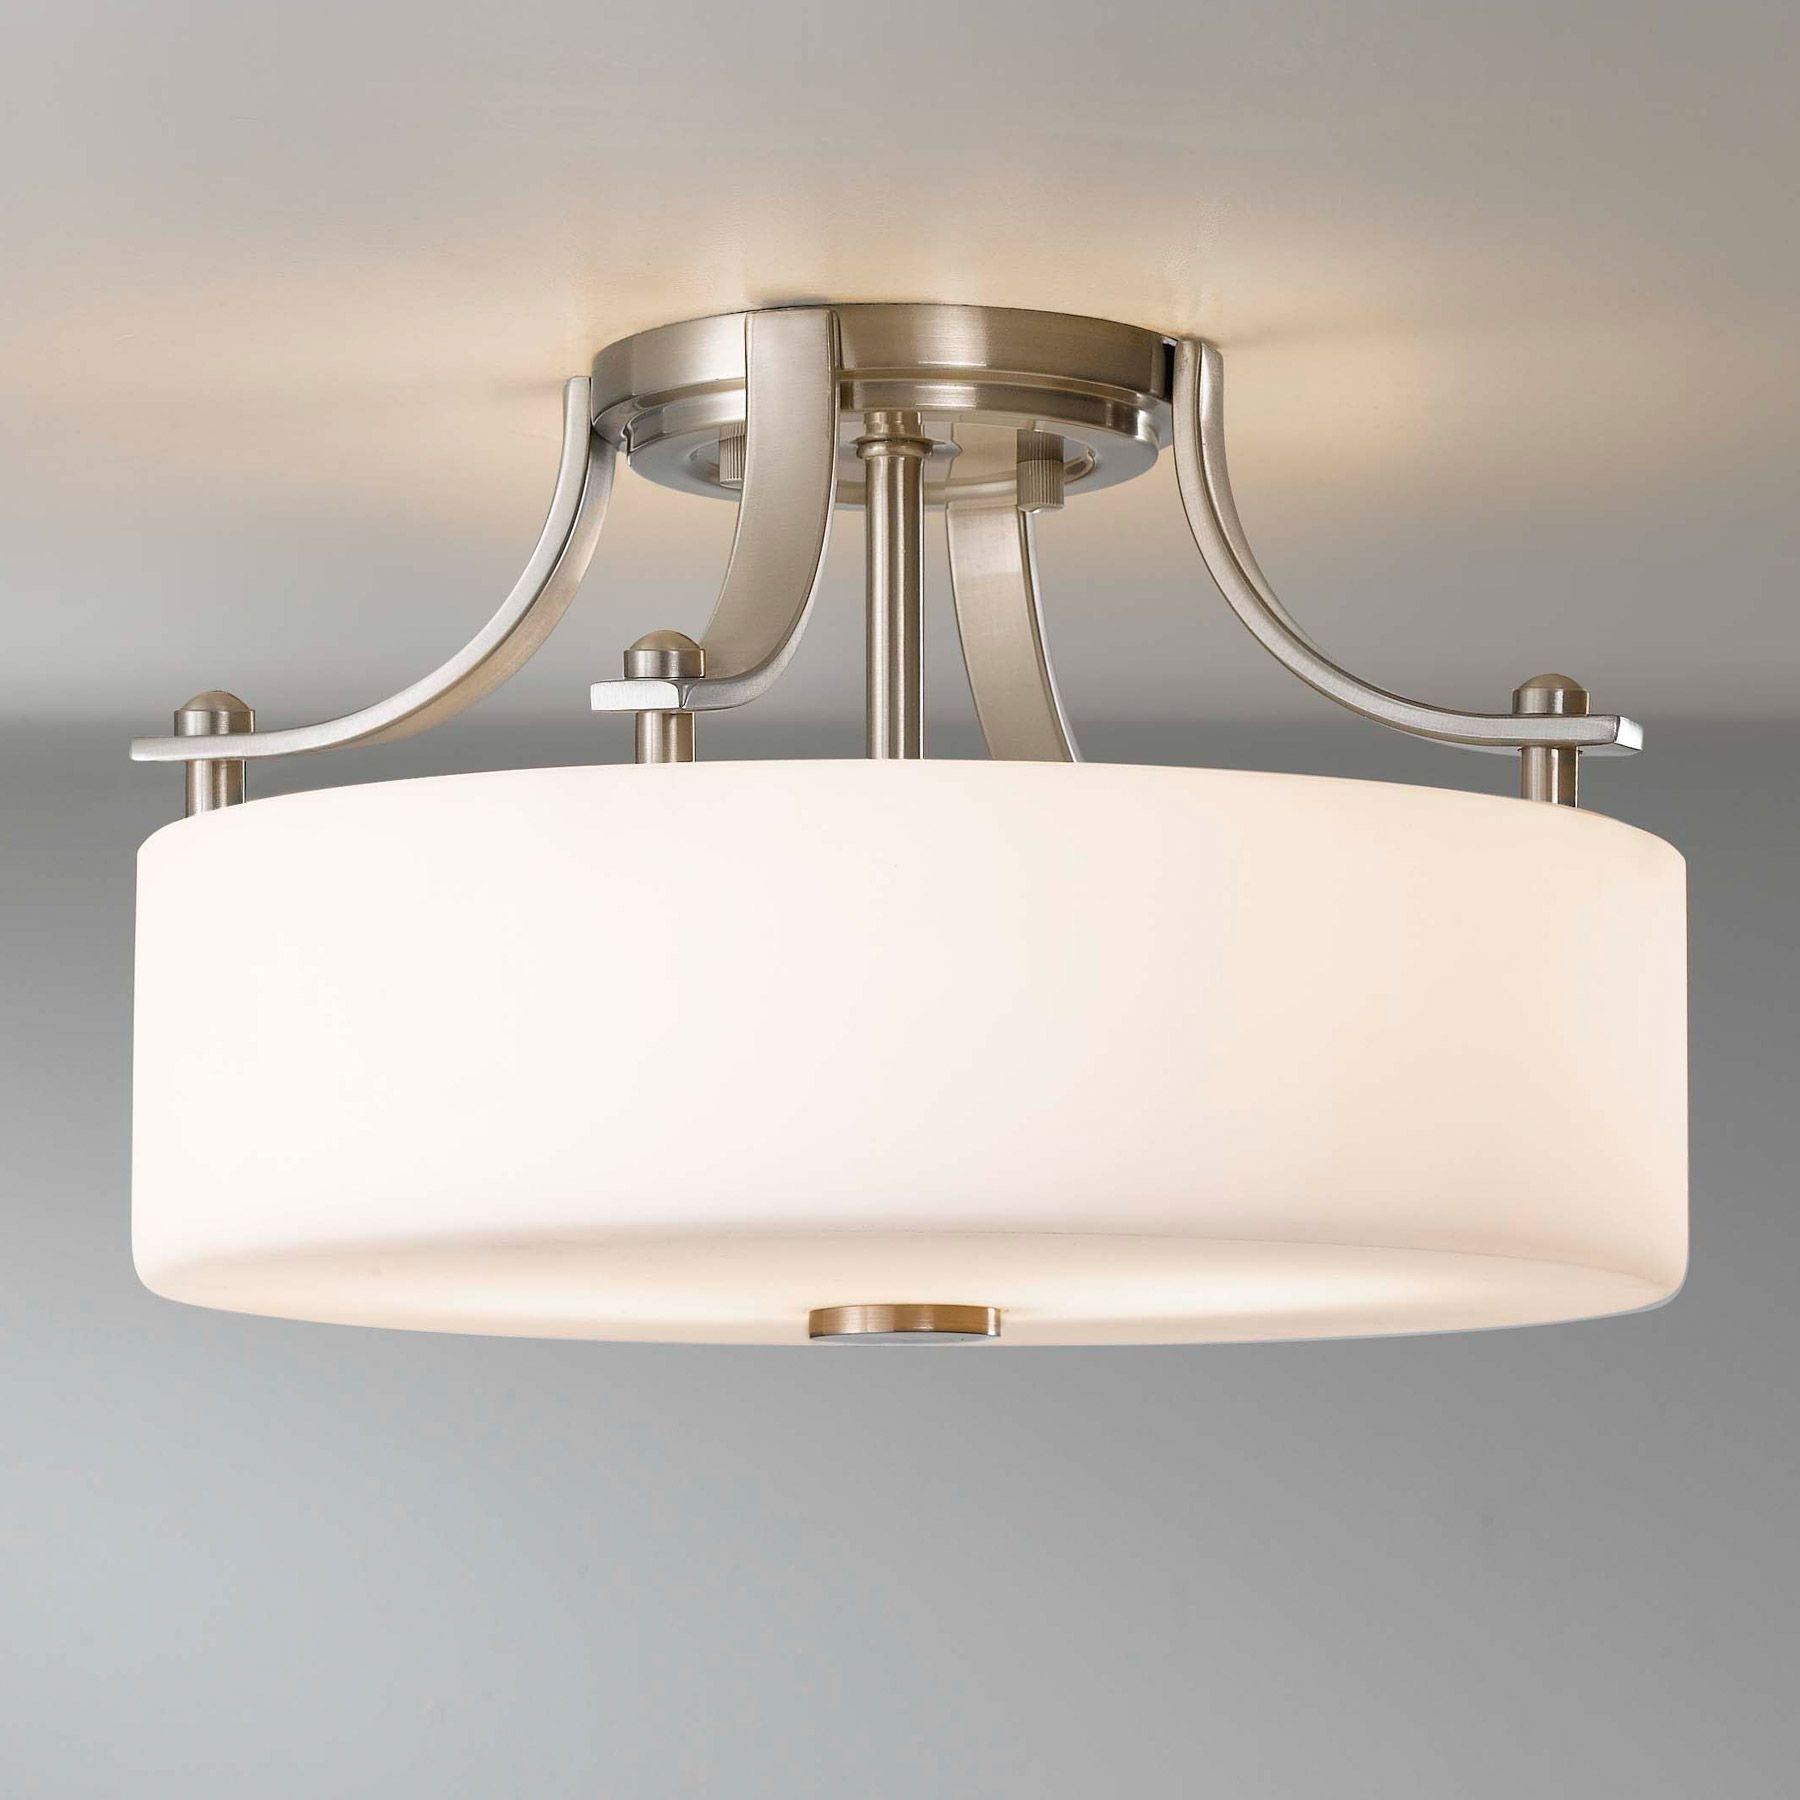 Flush Mount Kitchen Light White Flushmount Light Fixture Flush Mount Ceiling Light